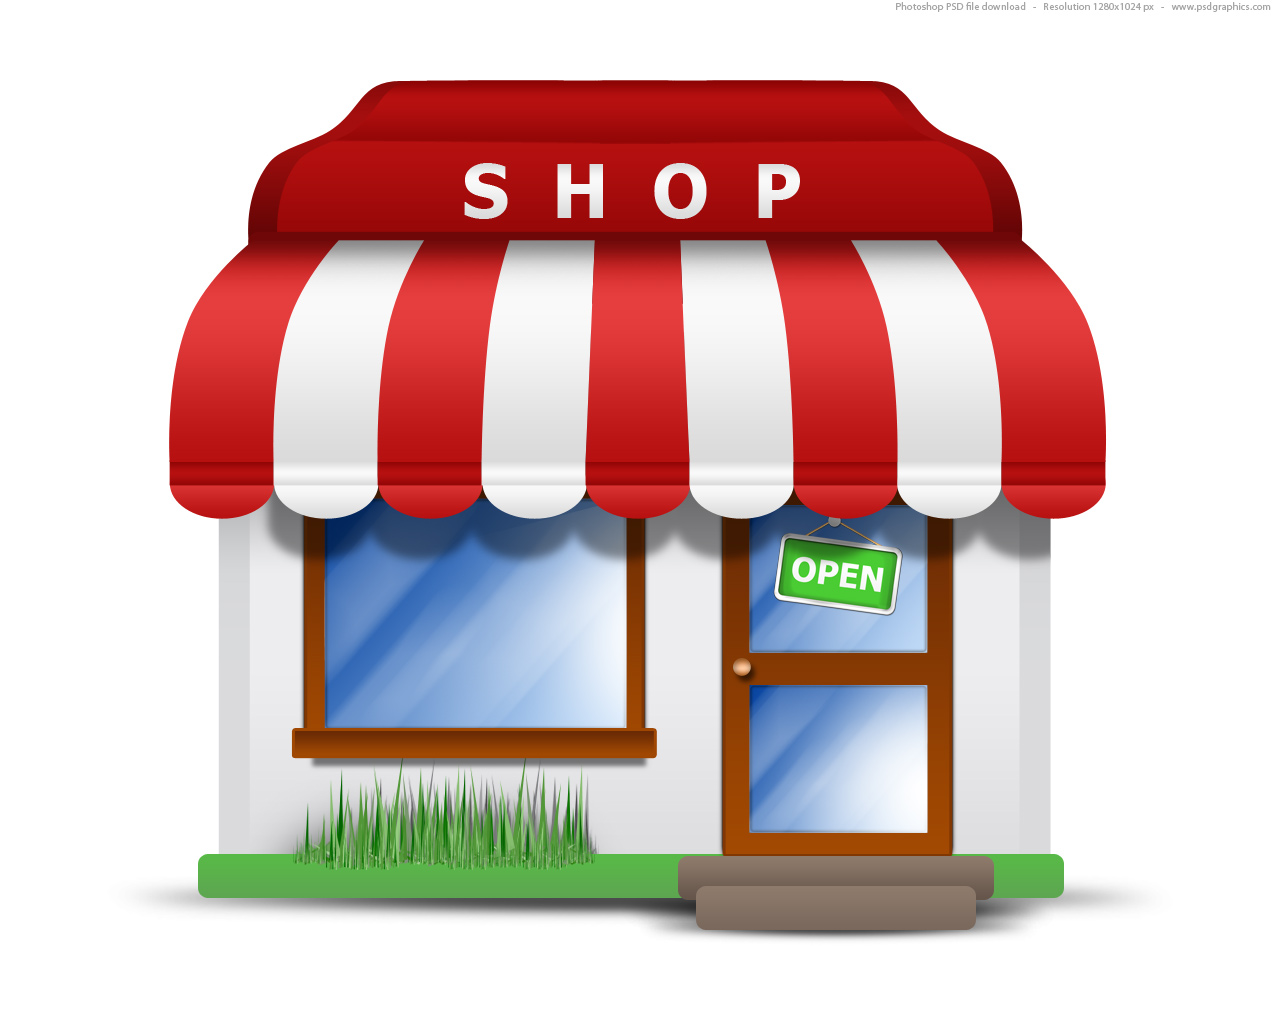 Full size JPG preview: Market store icon